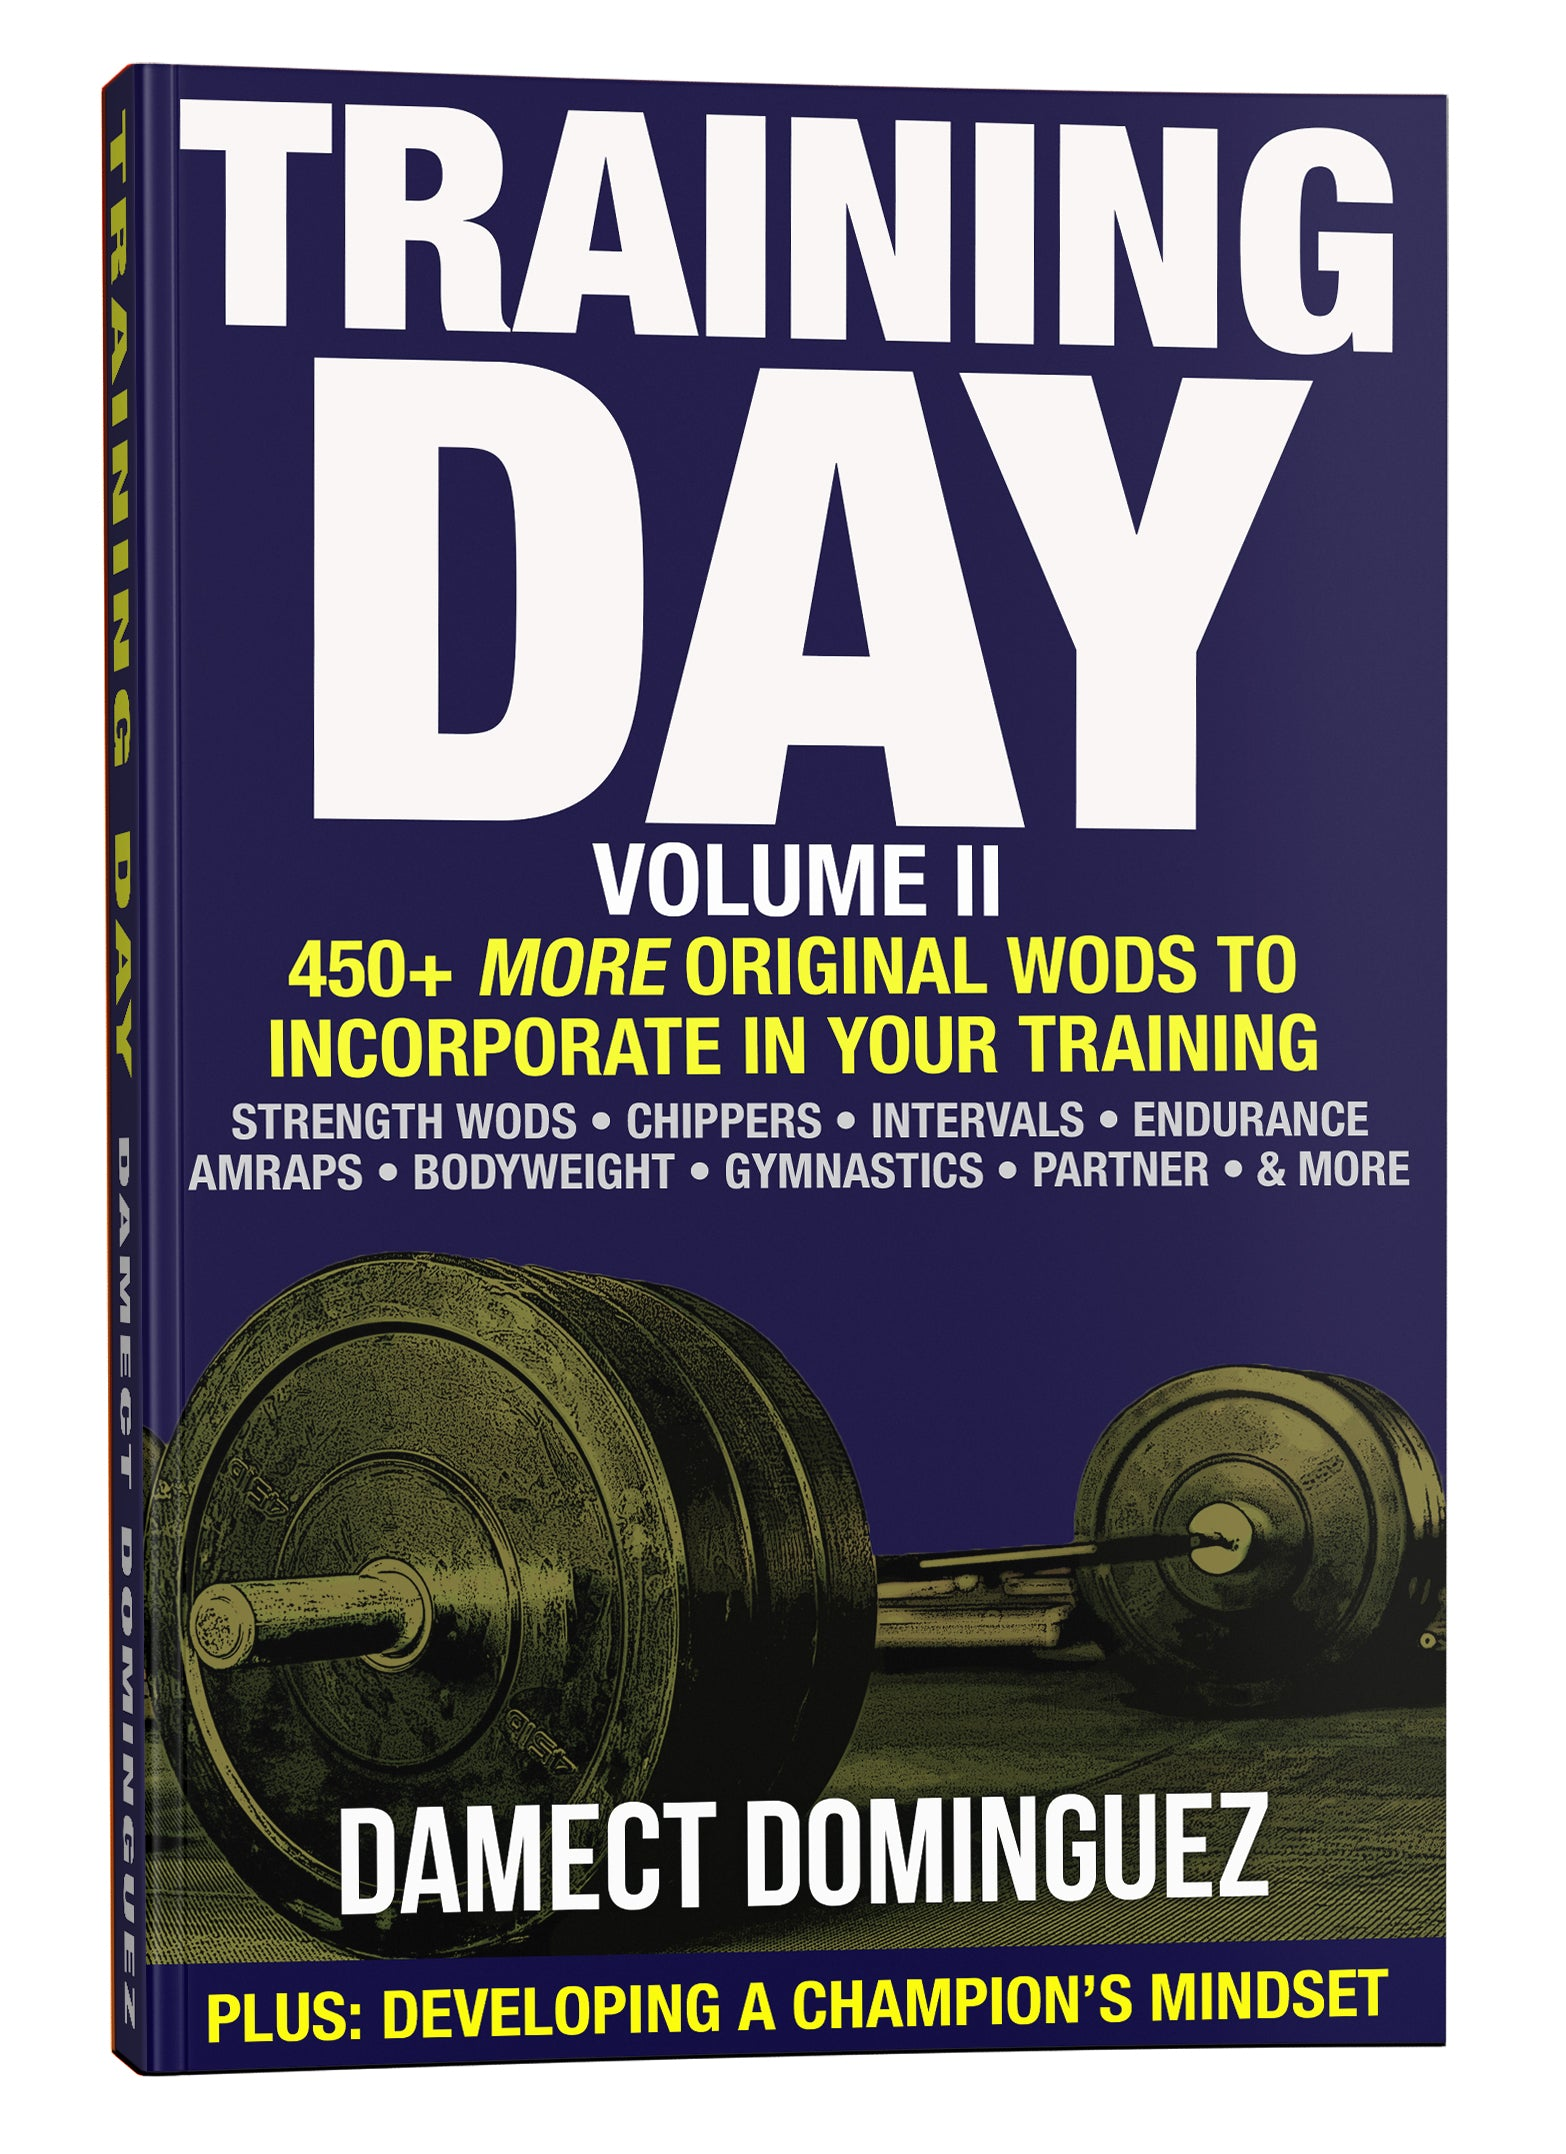 Training Day, Volume II: 450+ More Original WODs to Incorporate in Your Training